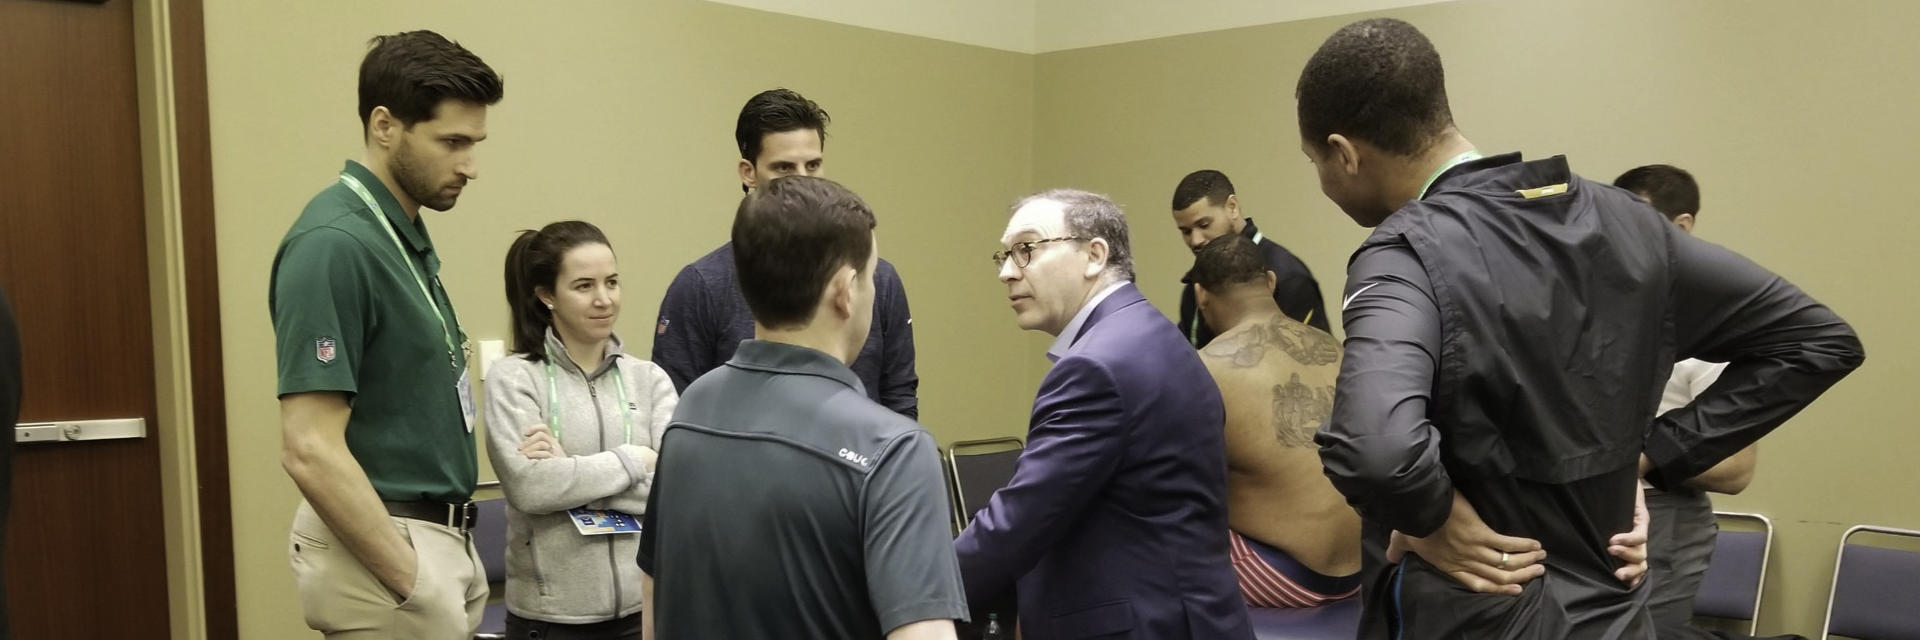 Dr. Mark Zoland Teaching Team Docs and Trainers at the NFL Combine